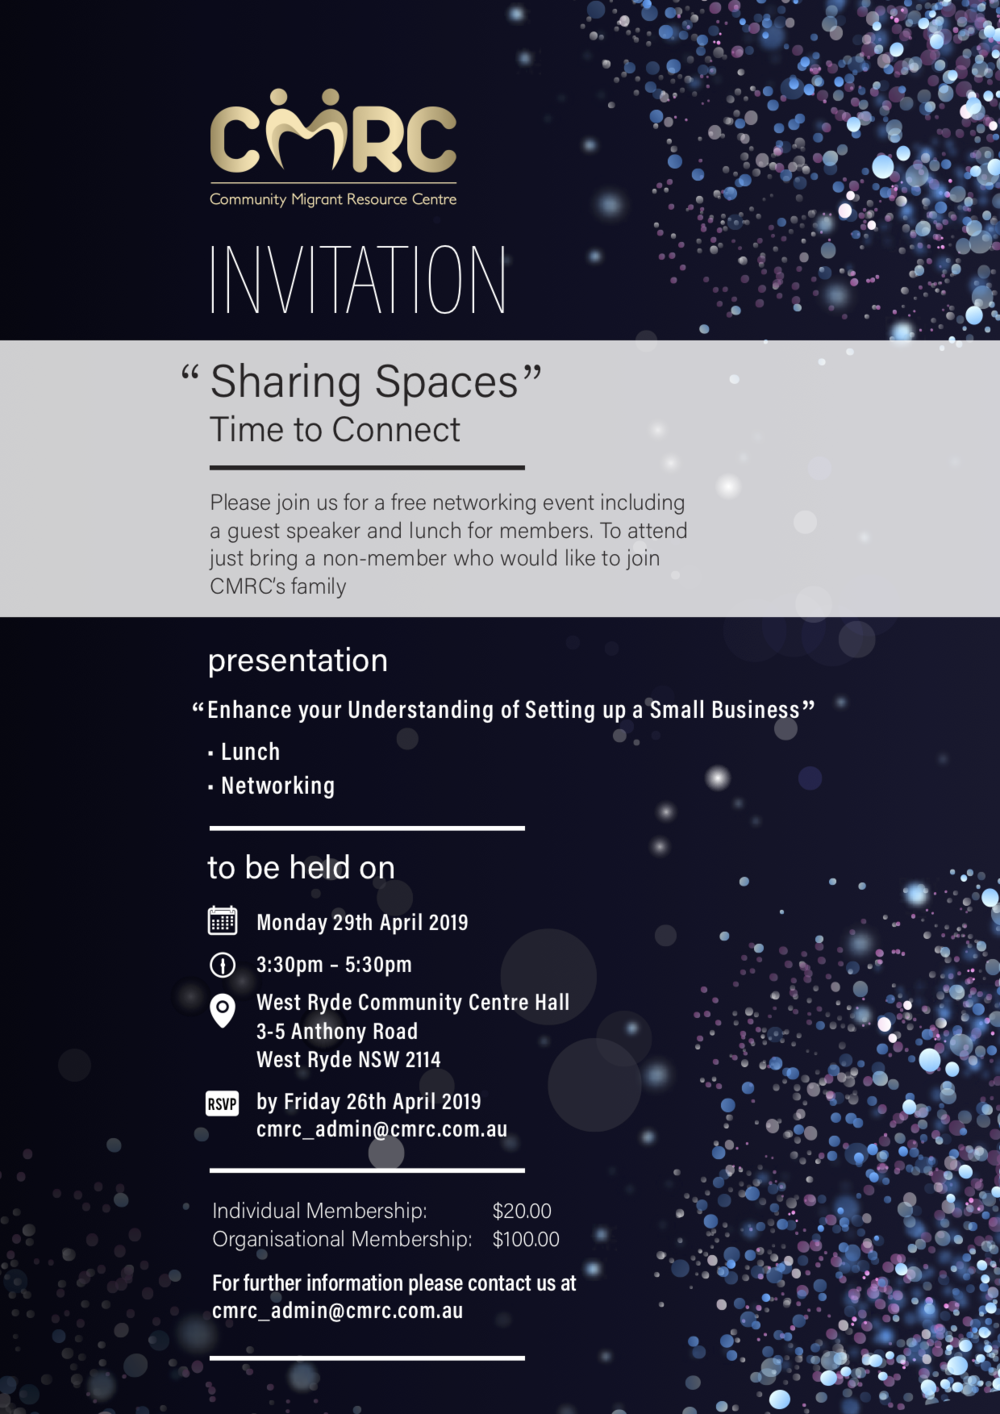 CMRC-Sharing SpacesInvitation-29 Apr 2019.png